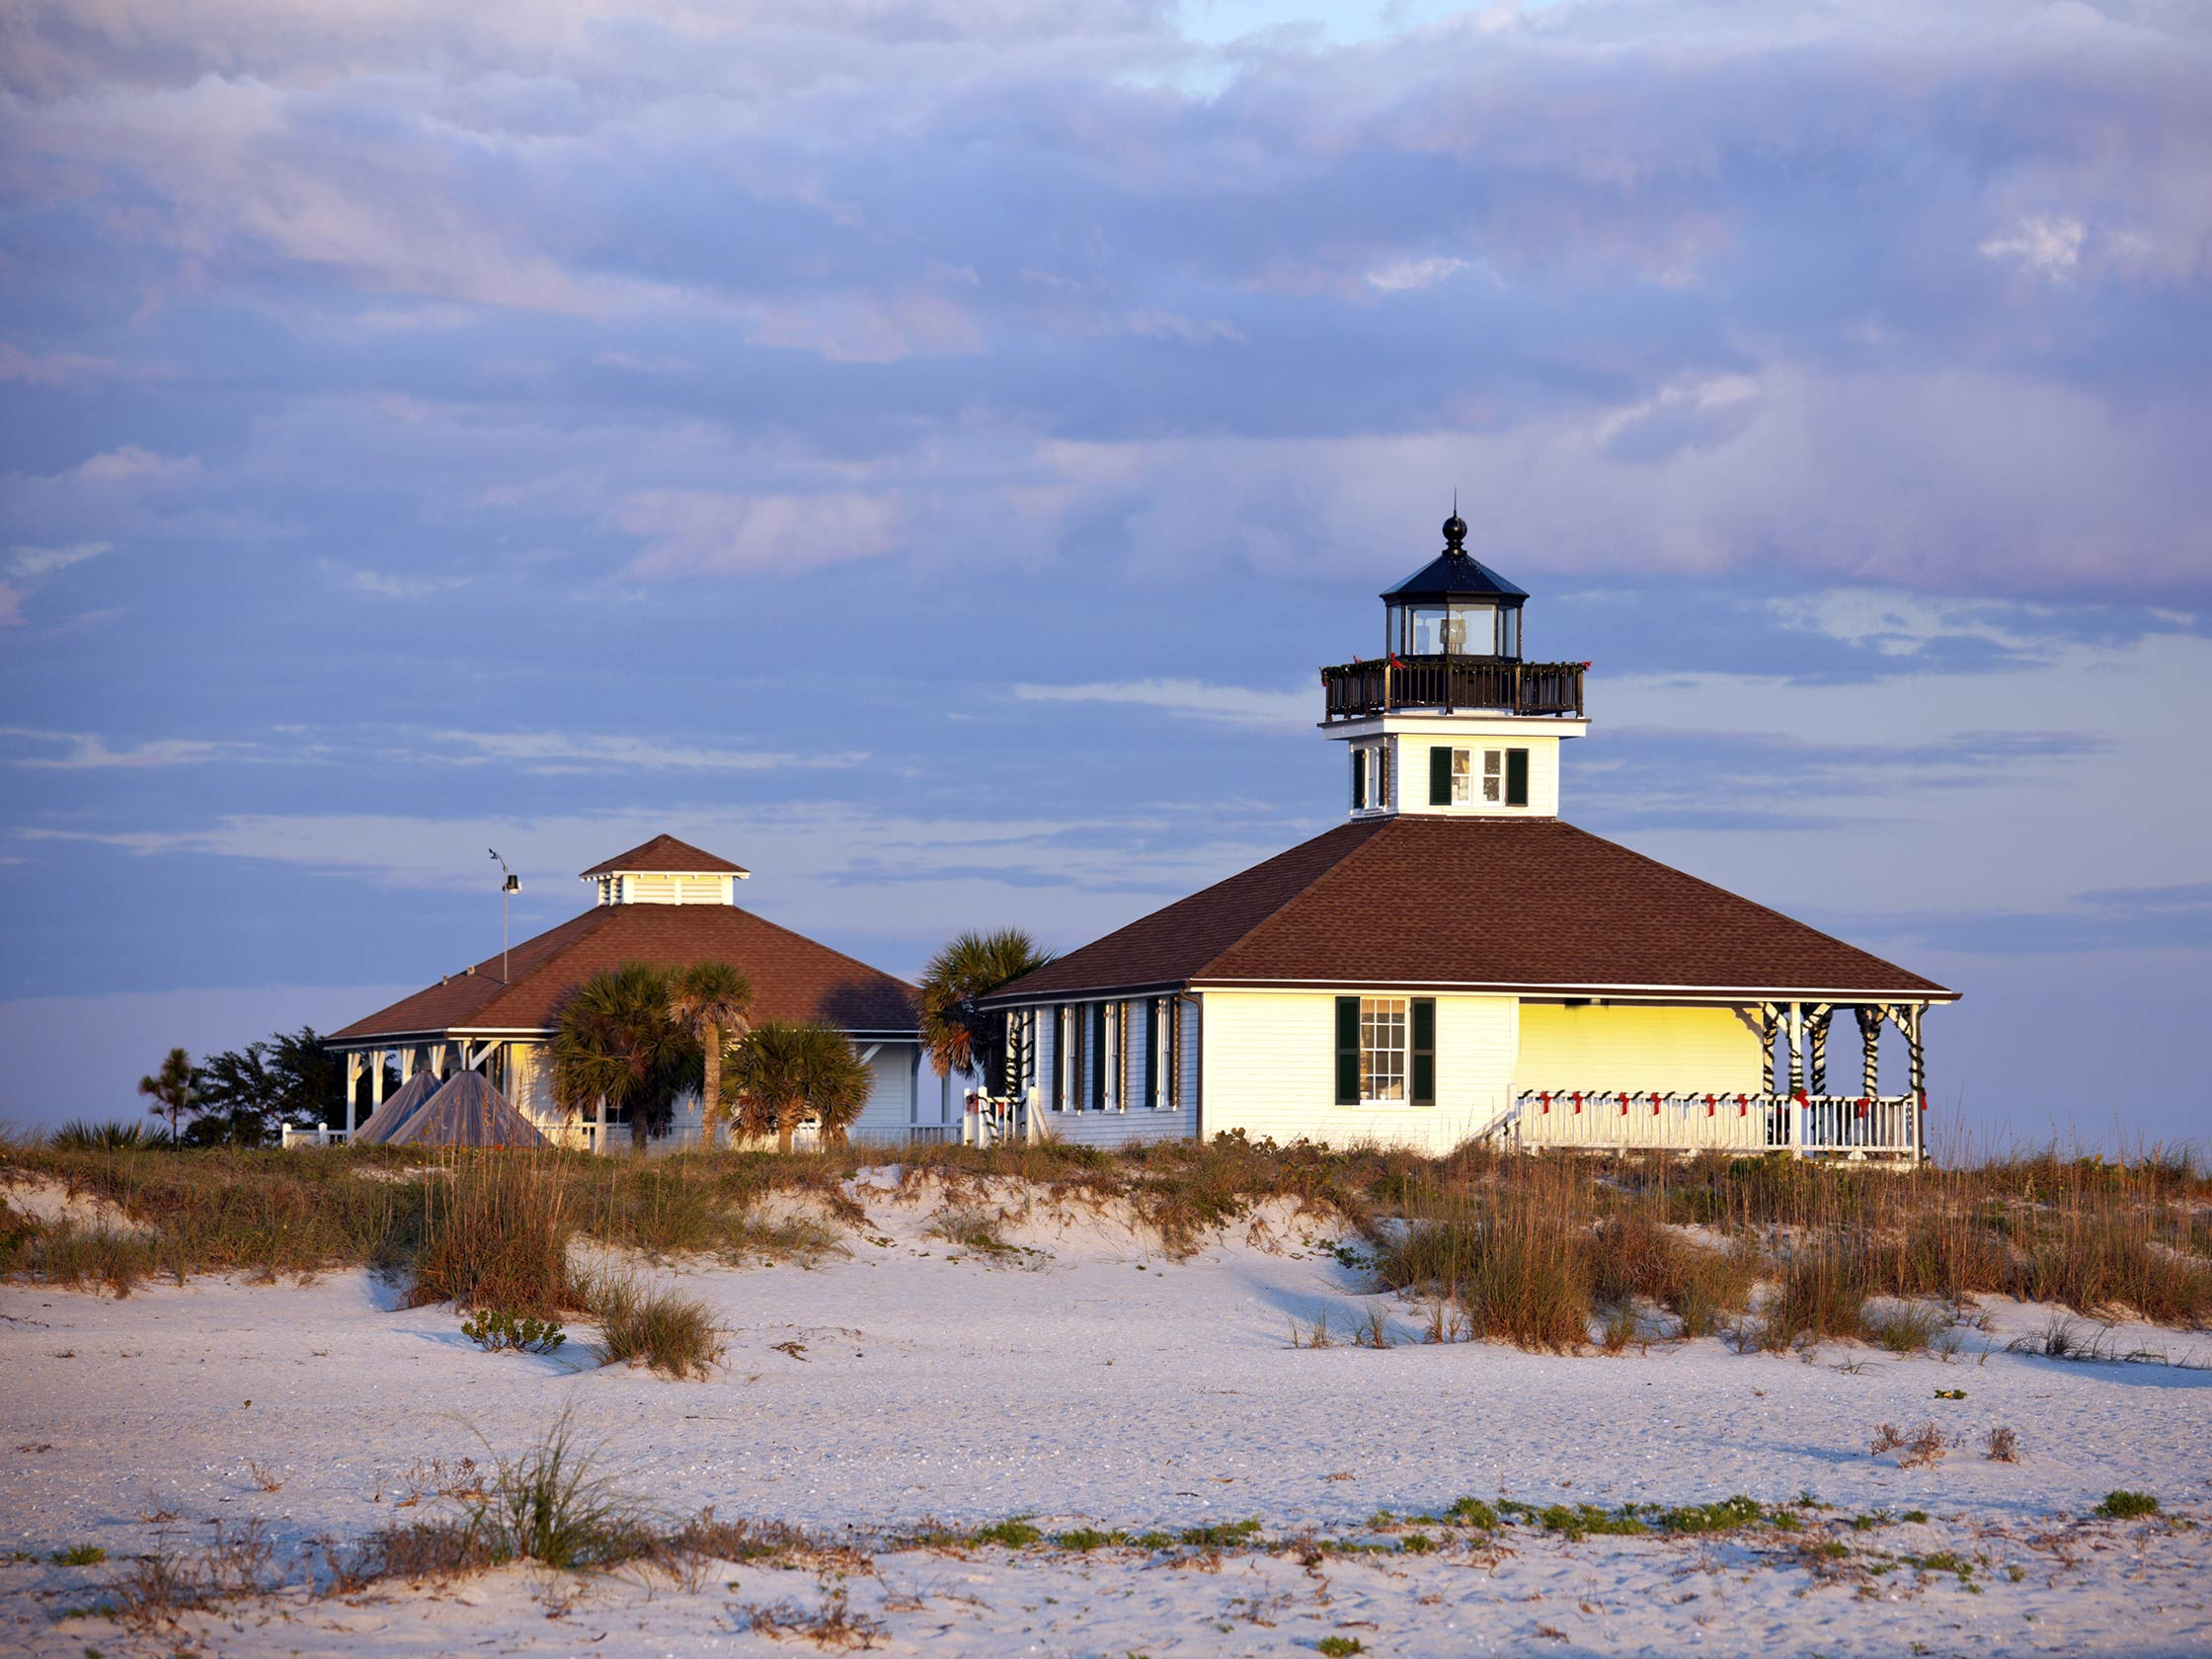 The Boca Grande Lighthouse from the beach, on Gasparilla Island in Florida